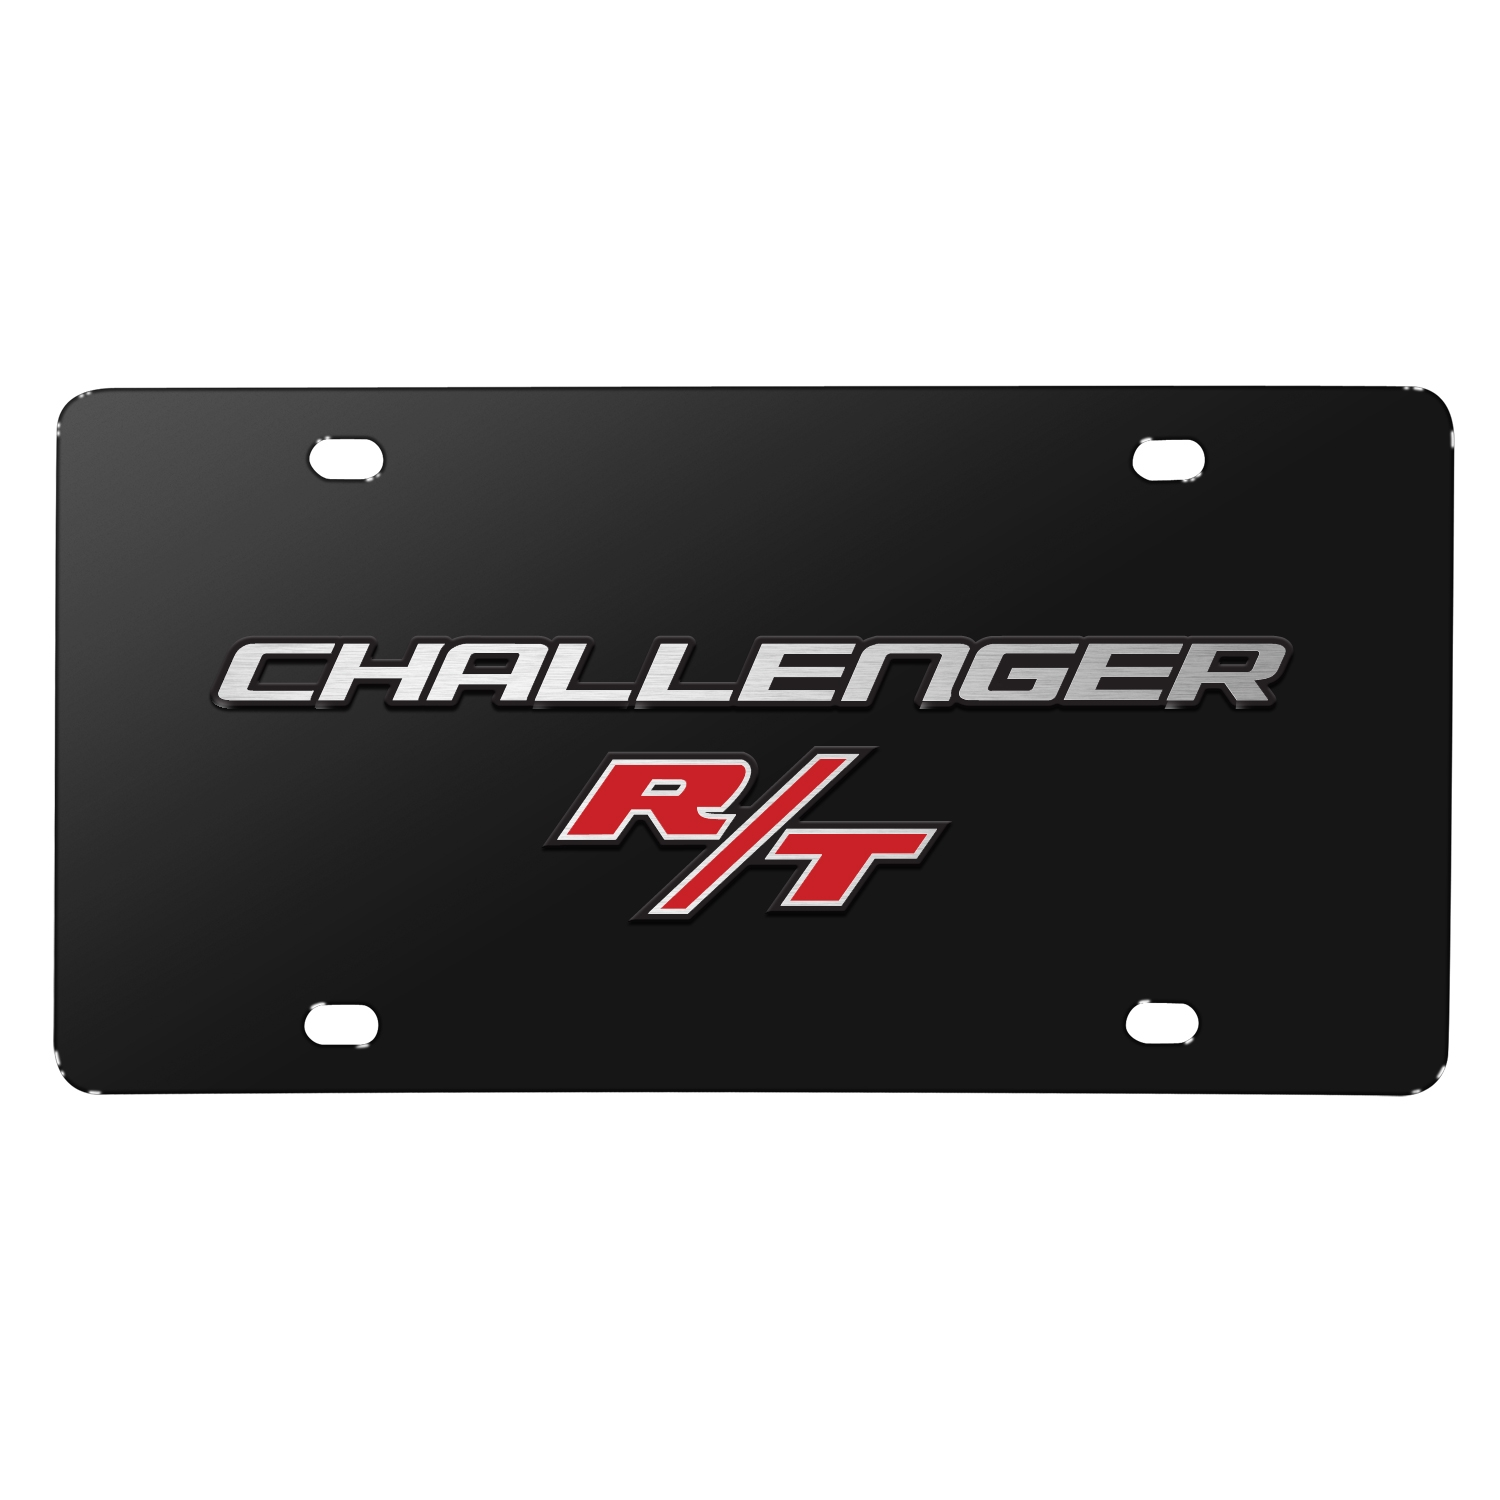 Dodge Challenger R/T 3D Logo on Black Stainless Steel License Plate